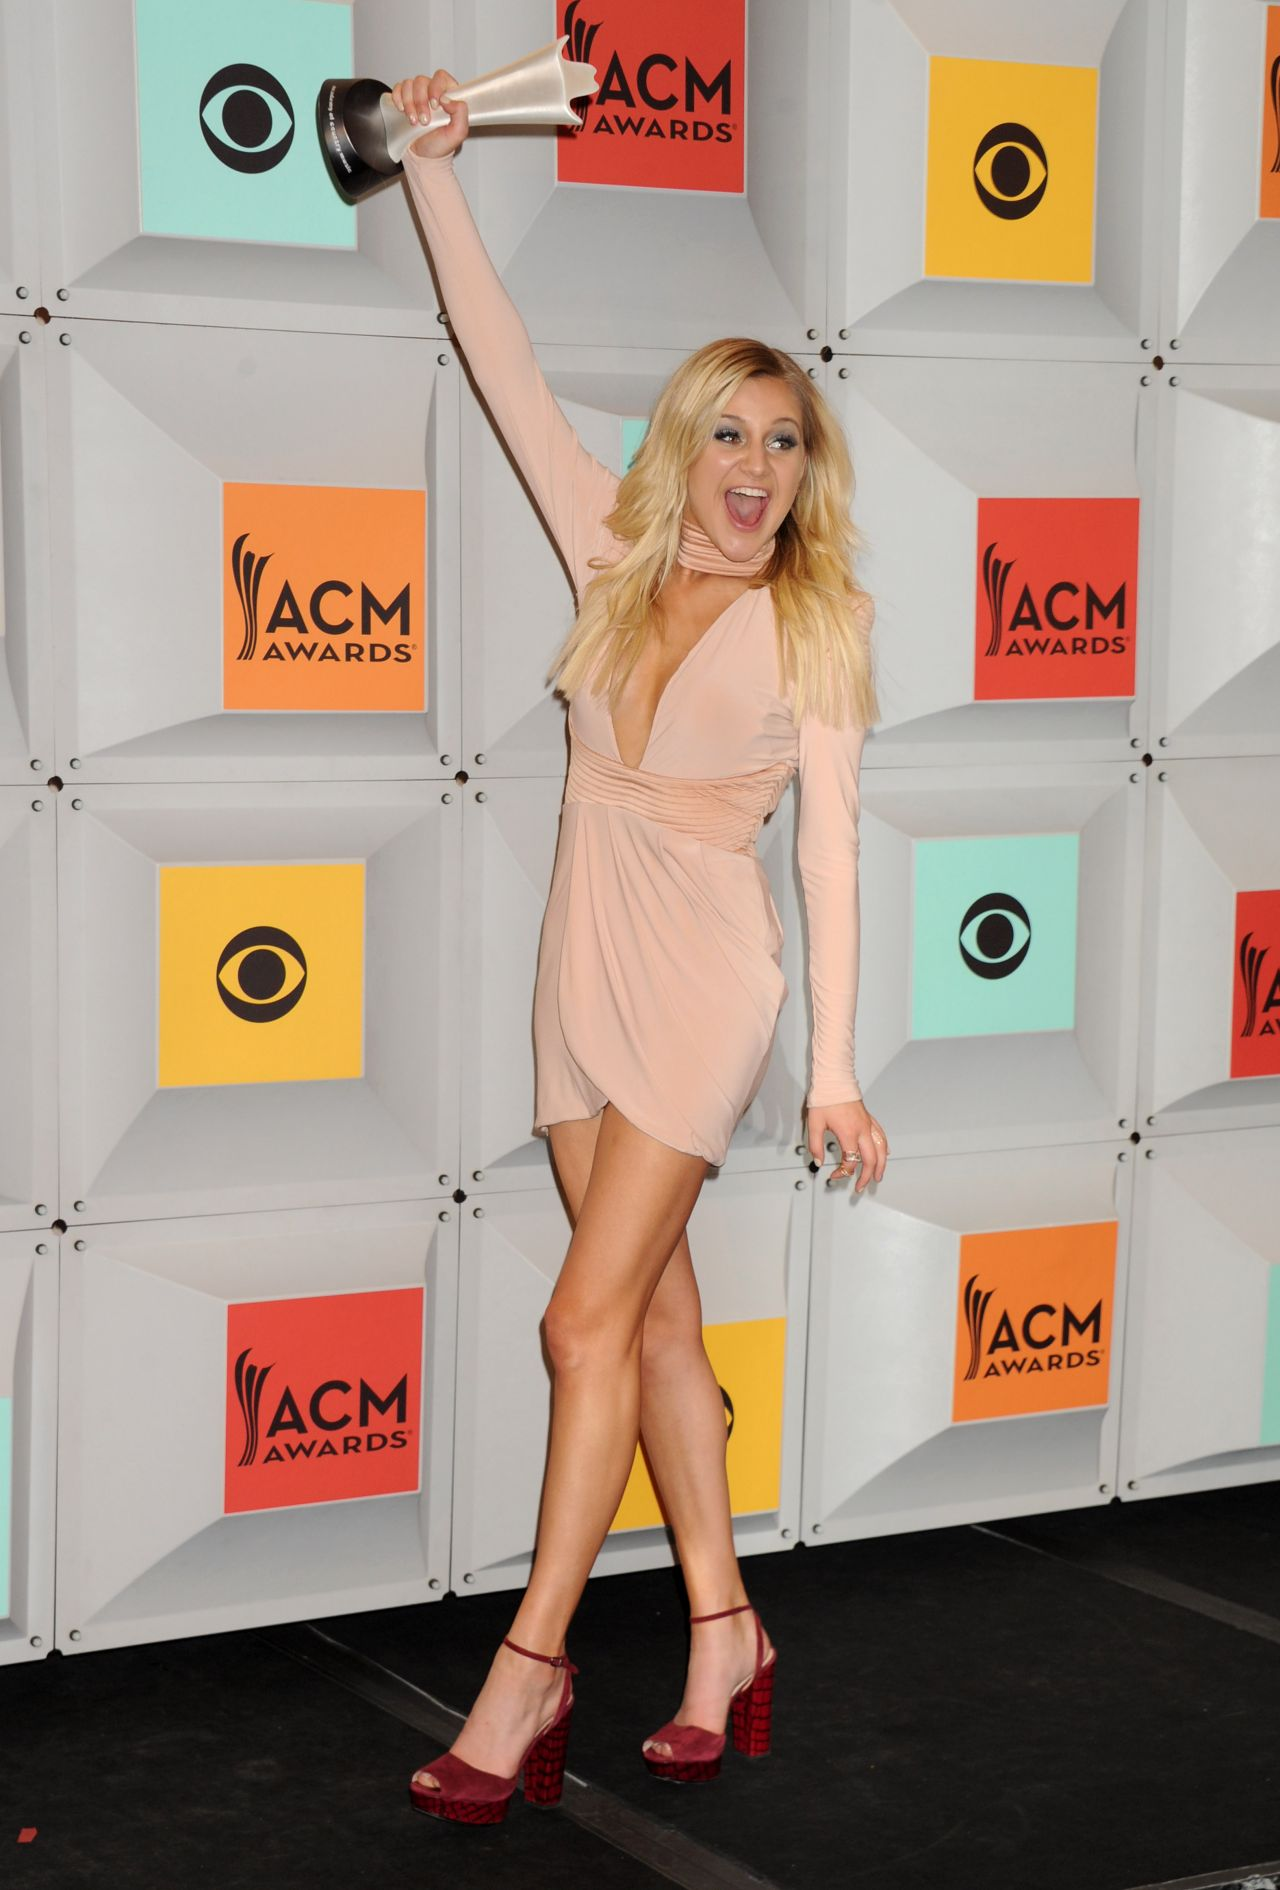 Kelsea Ballerini Academy Of Country Music Awards 2016 In